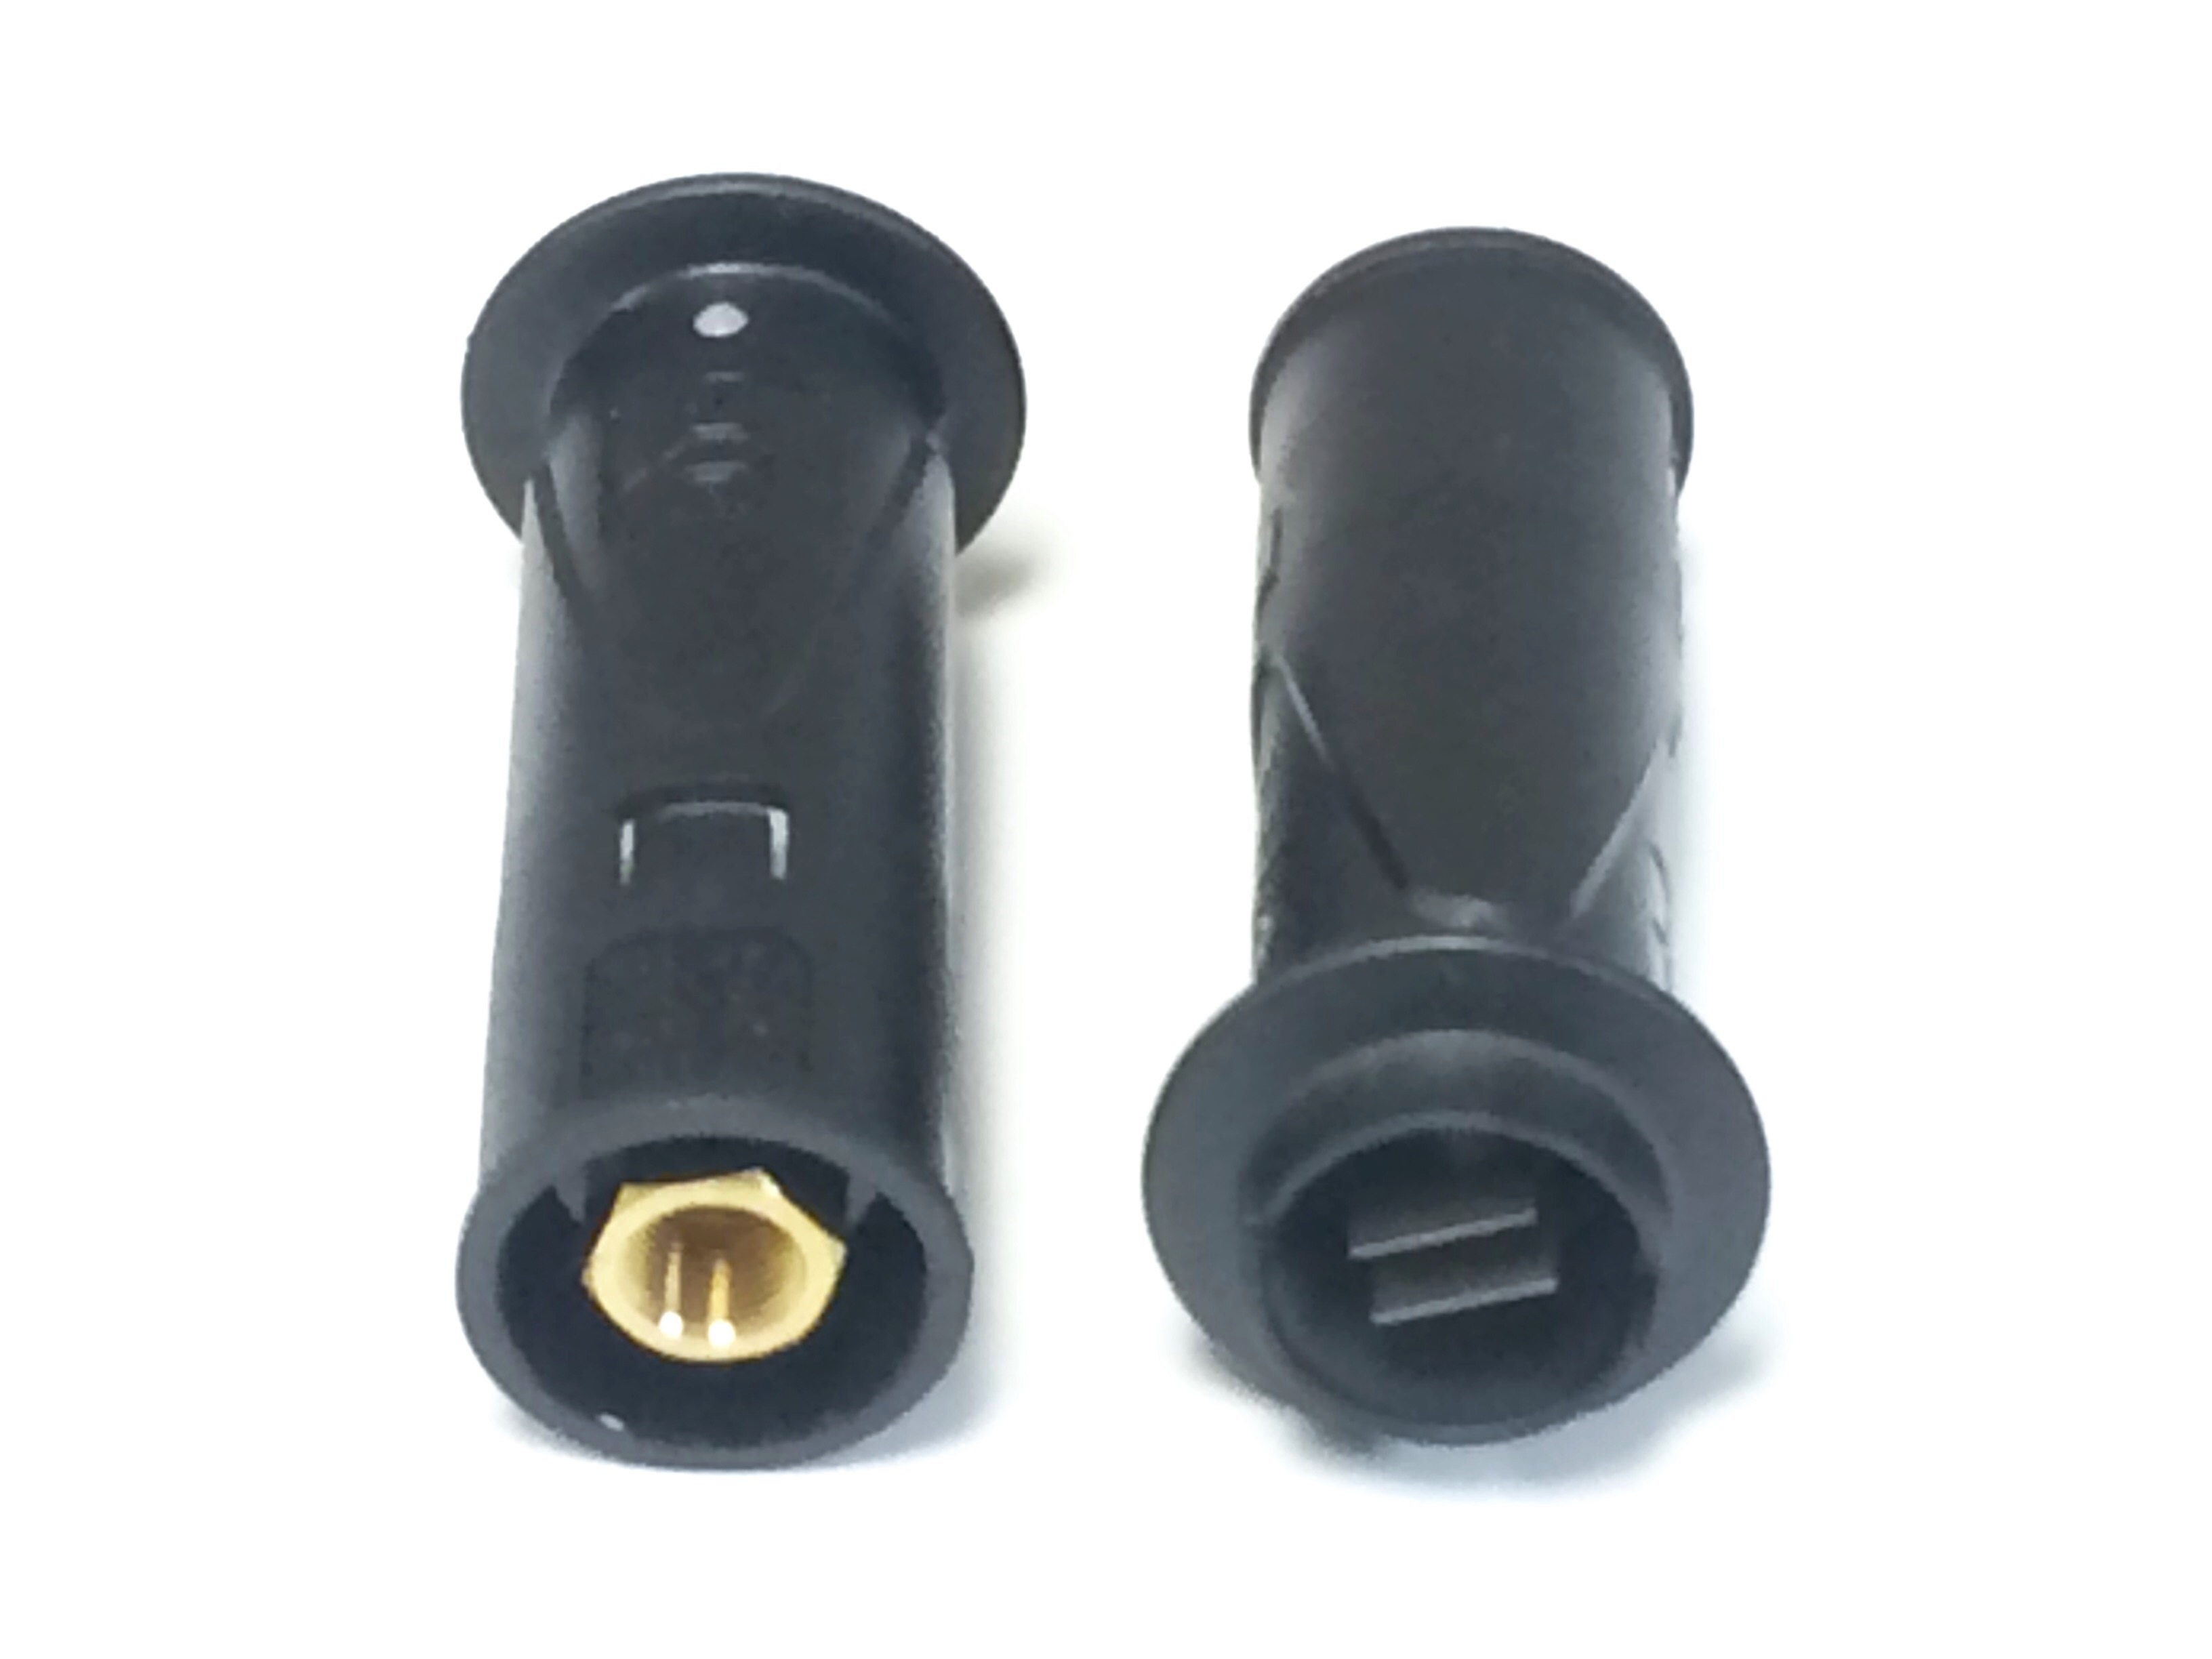 General Pump Adjustable Nozzle